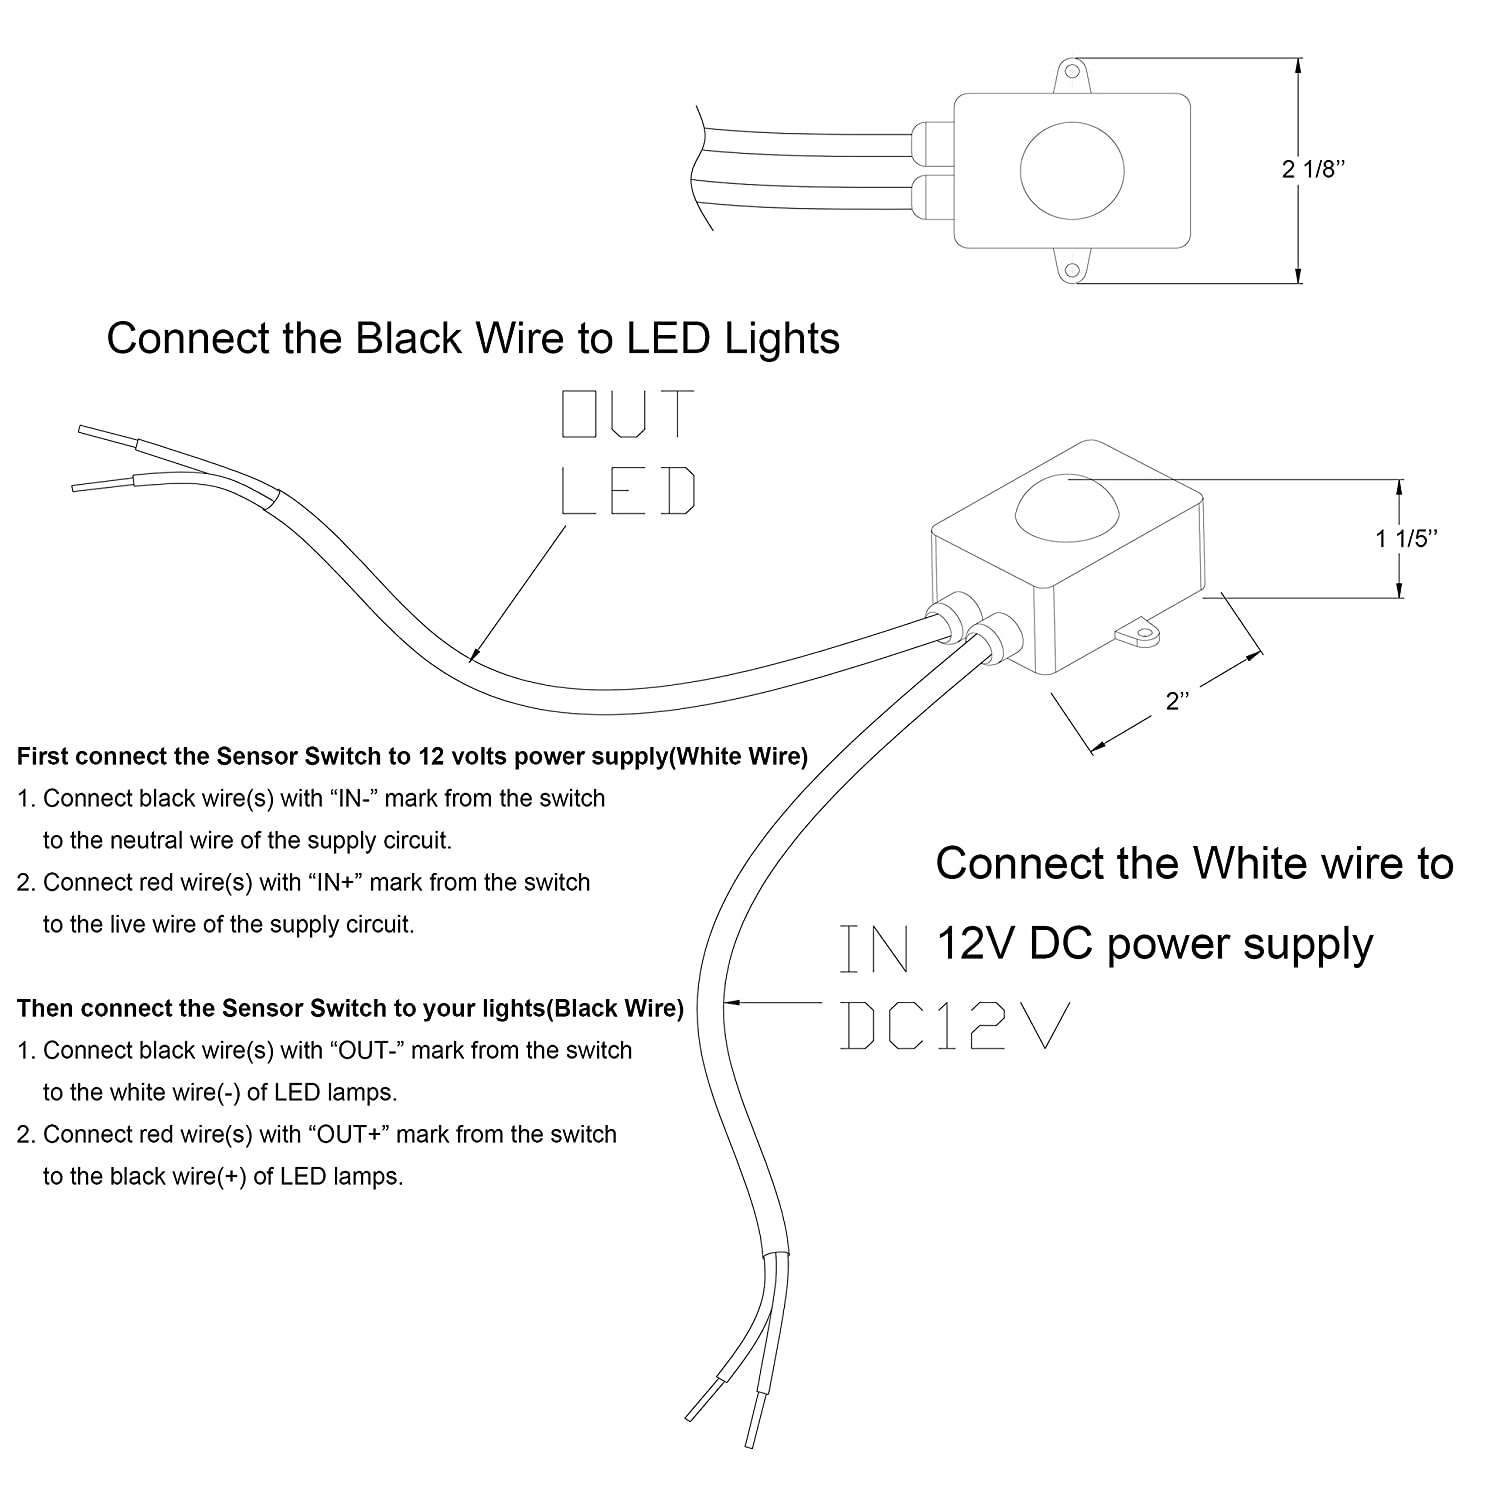 dc power 2 switches 2 lights diagram trusted schematics diagram rh  roadntracks com 3-Way Switch Wiring Diagram Variations Double Wall Switch  Wiring Diagram